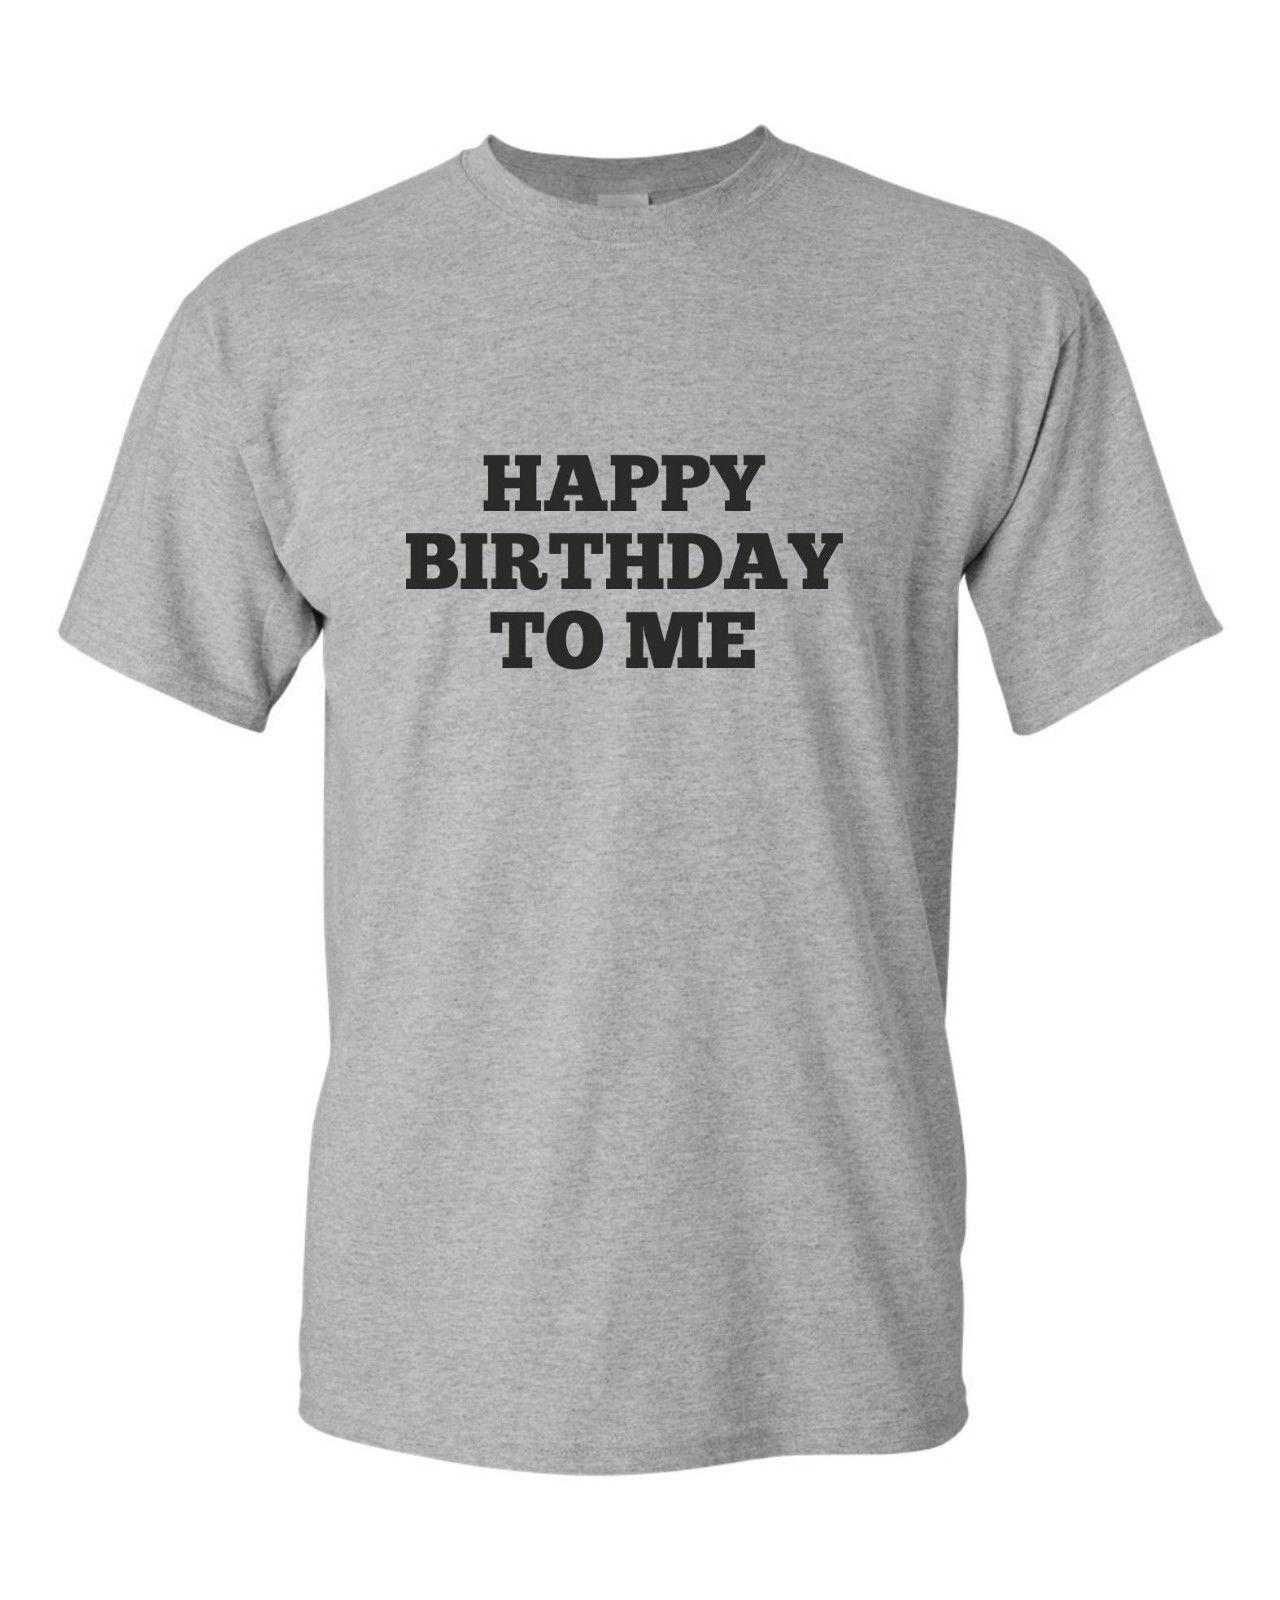 HAPPY BIRTHDAY TO ME Funny Mens T Shirt Birthday Gift Party HUMOUR